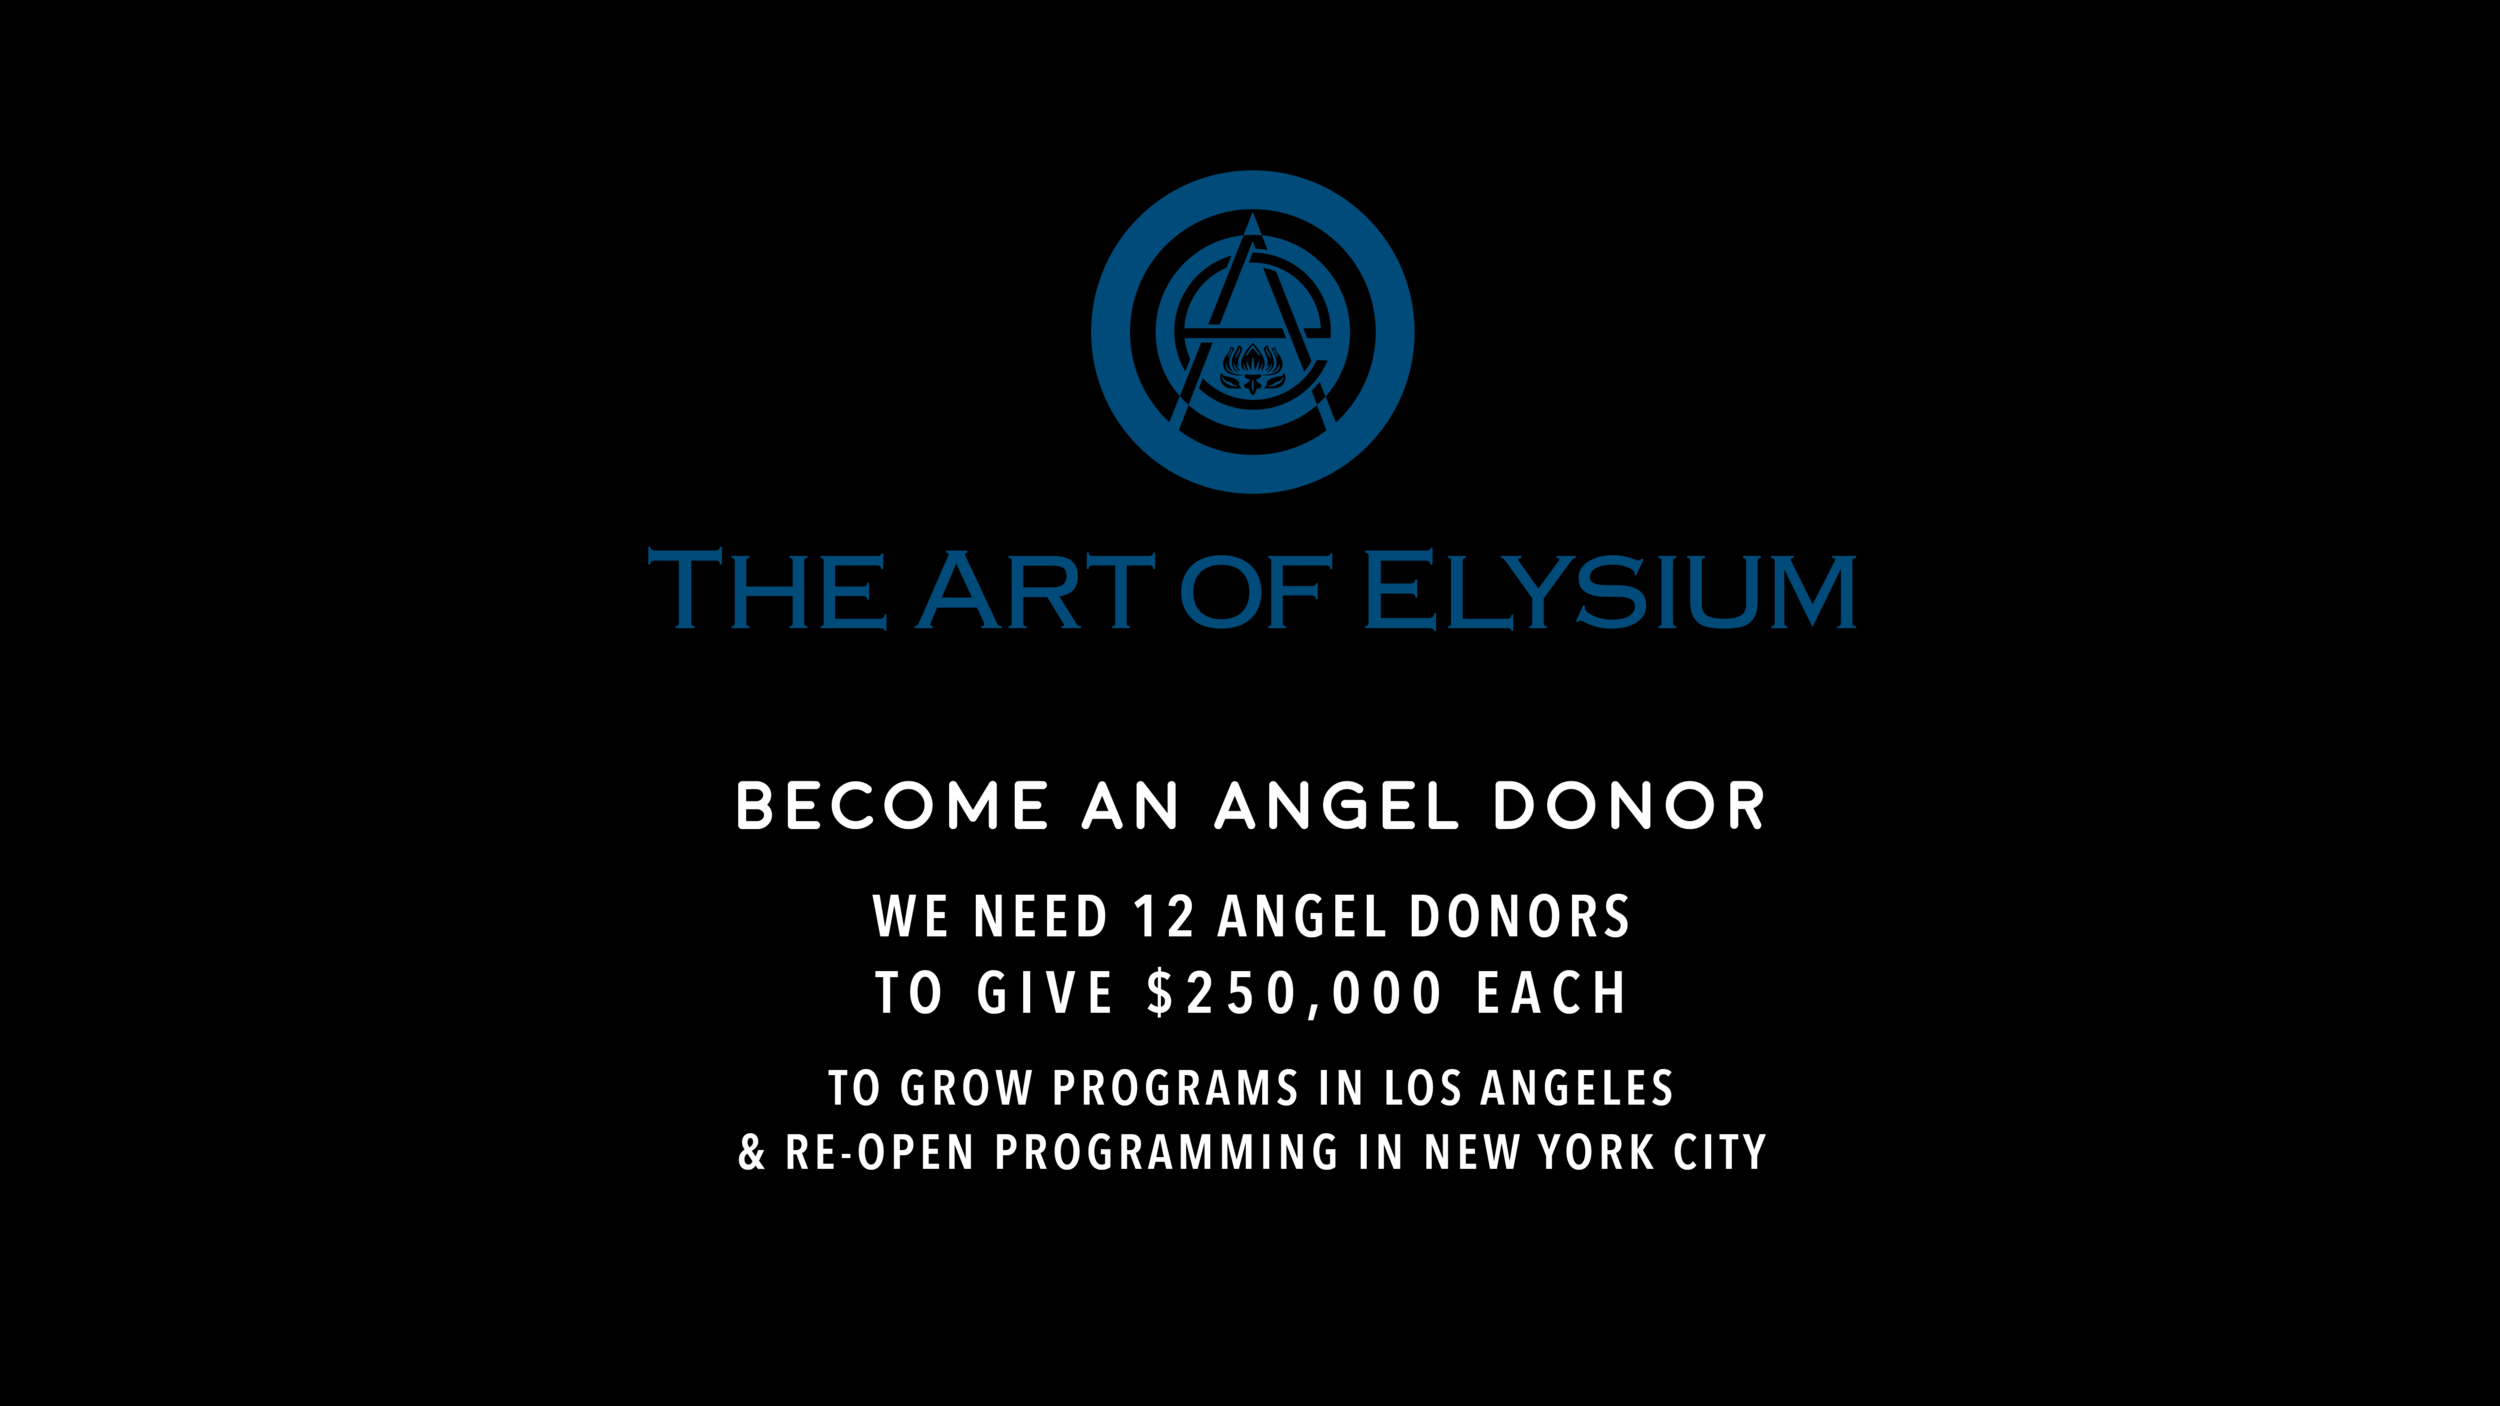 Become an Angel Donor. Support program growth and expansion to more communities of need in Los Angeles and New York City. Each Angel Donor will sponsor a month of programming. As a program sponsor we will dedicate that month to an individual, foundation or organization of your choice. We welcome individual donors, family foundations and corporate partners.  For more information, please contact Anna Rogers, arogers@theartofelysium.org.